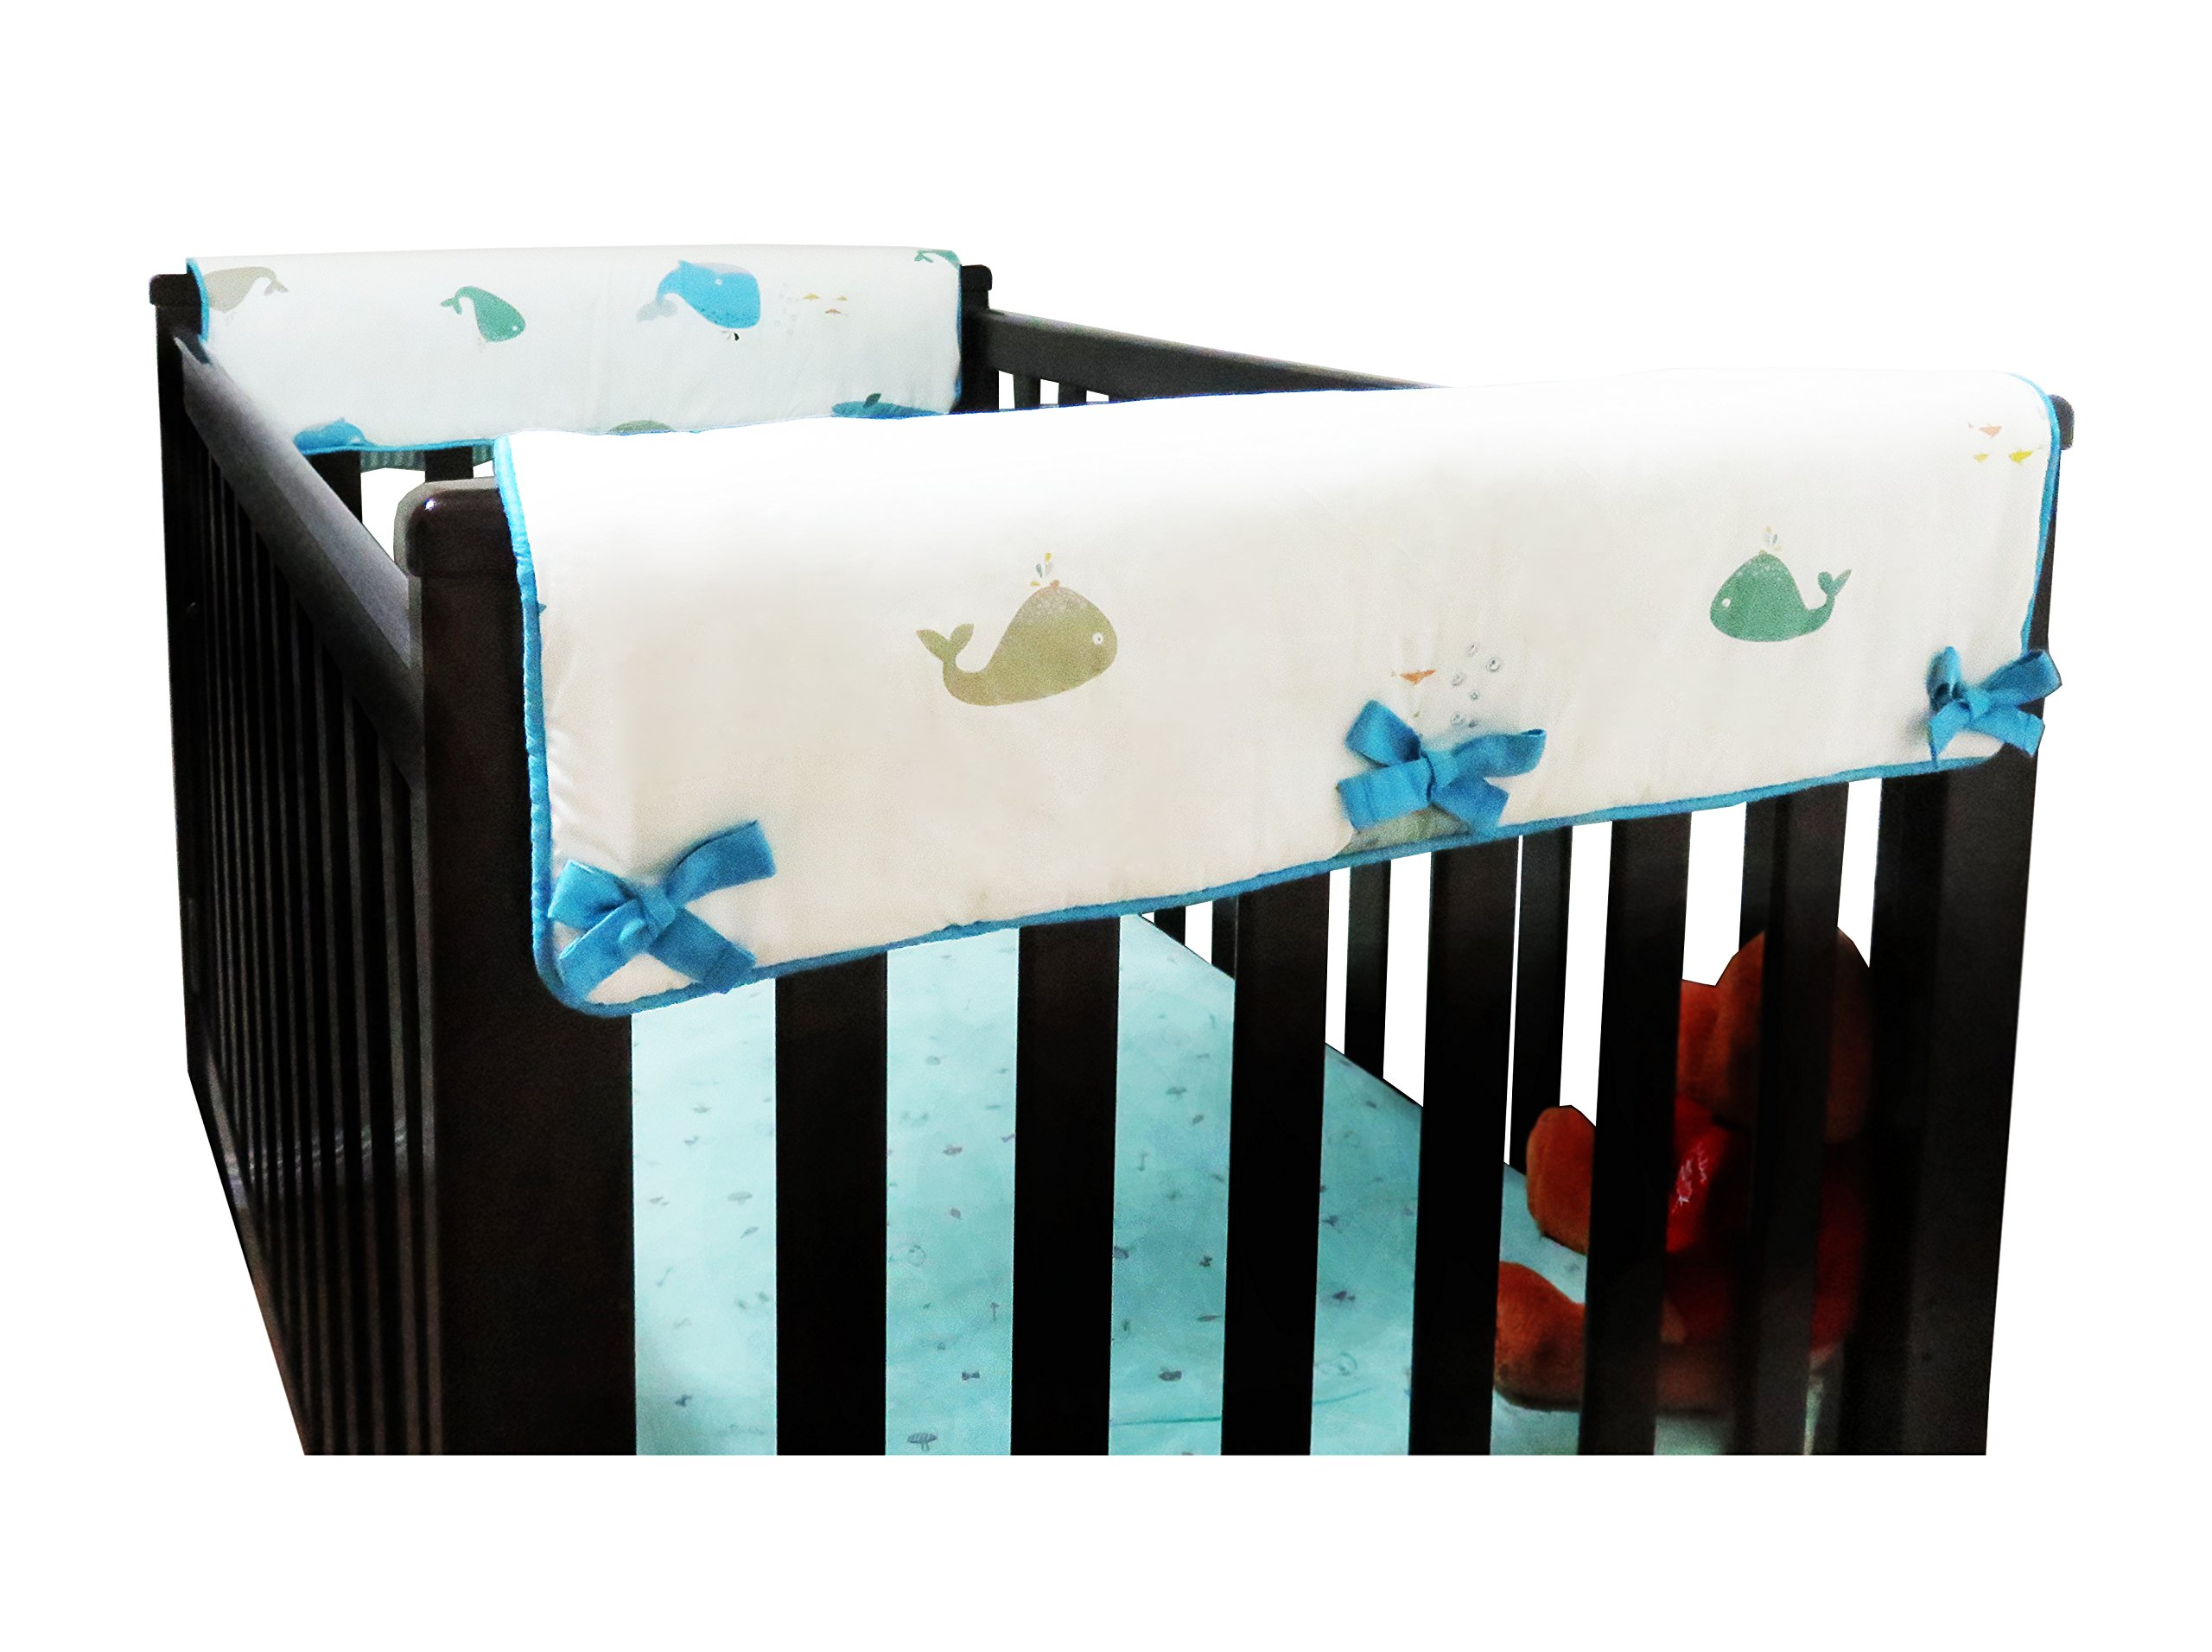 2 Piece 100% Cotton Side Crib Rail Guard Cover/Wrap 29.5'' x 17.5'' for Your Teething Baby,Padding,Cute, Reversible, Machine Washable, Fits Most Standard Narrow & Modern Wide Crib Rails by KAI&HIRO (Image #2)